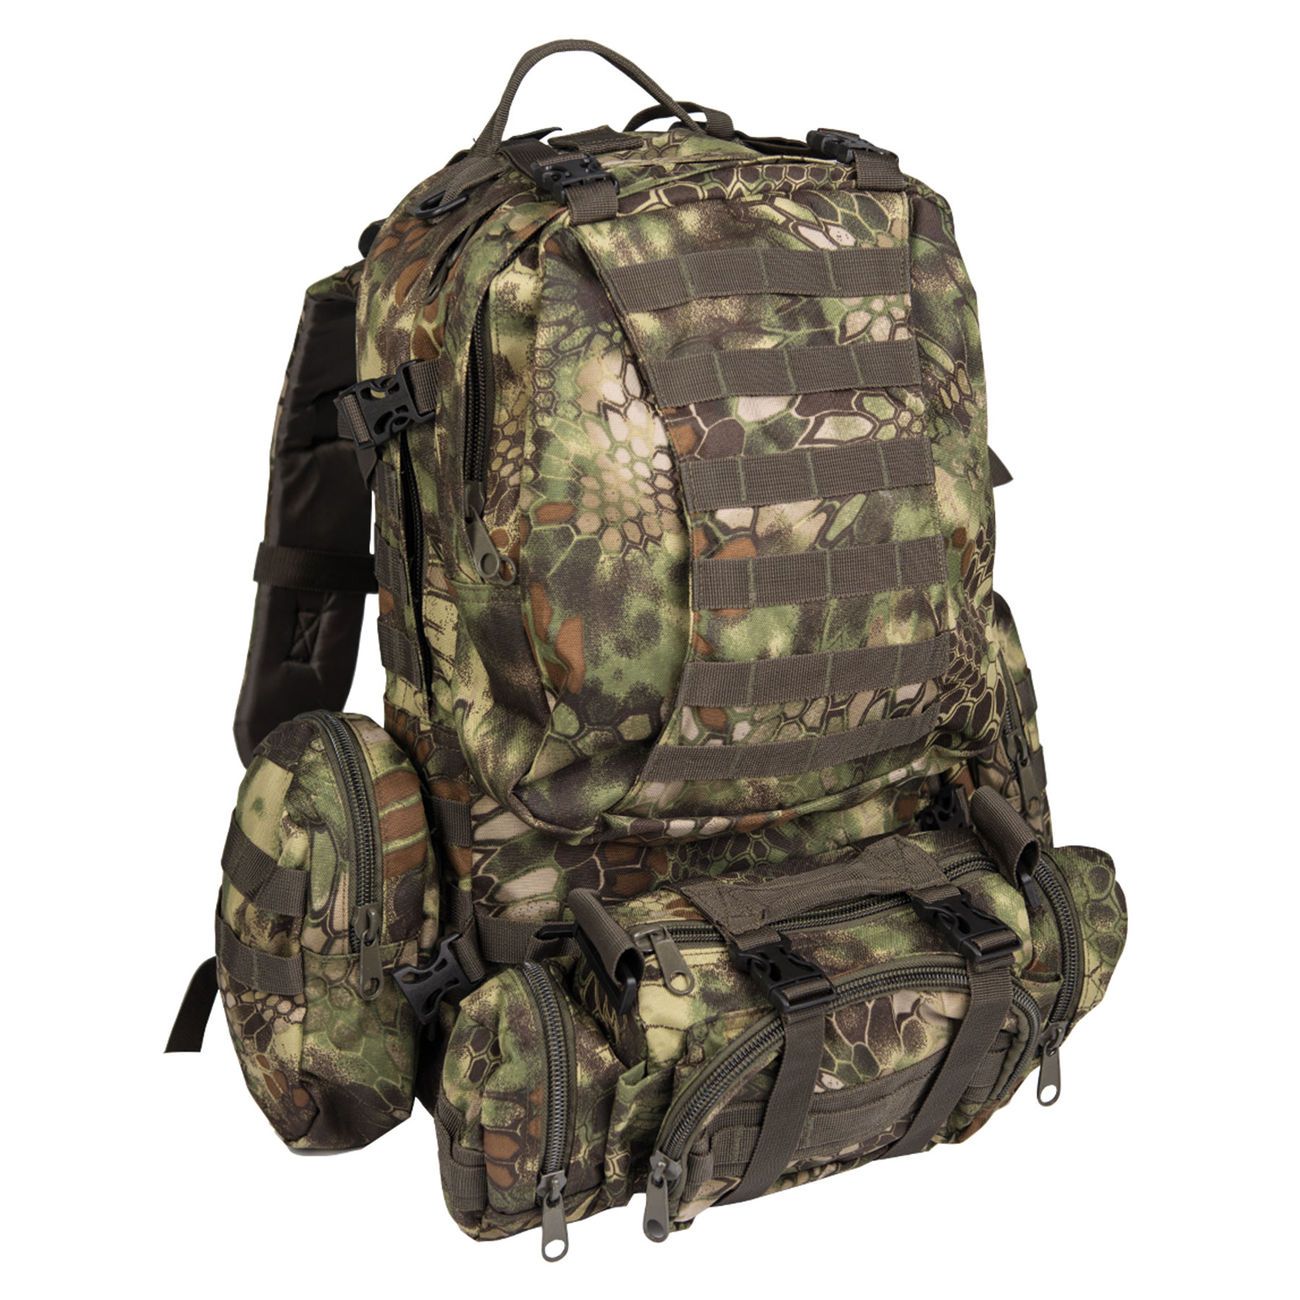 Mil-Tec Rucksack Defense Pack Assembly 36 ltr. mandra wood 0